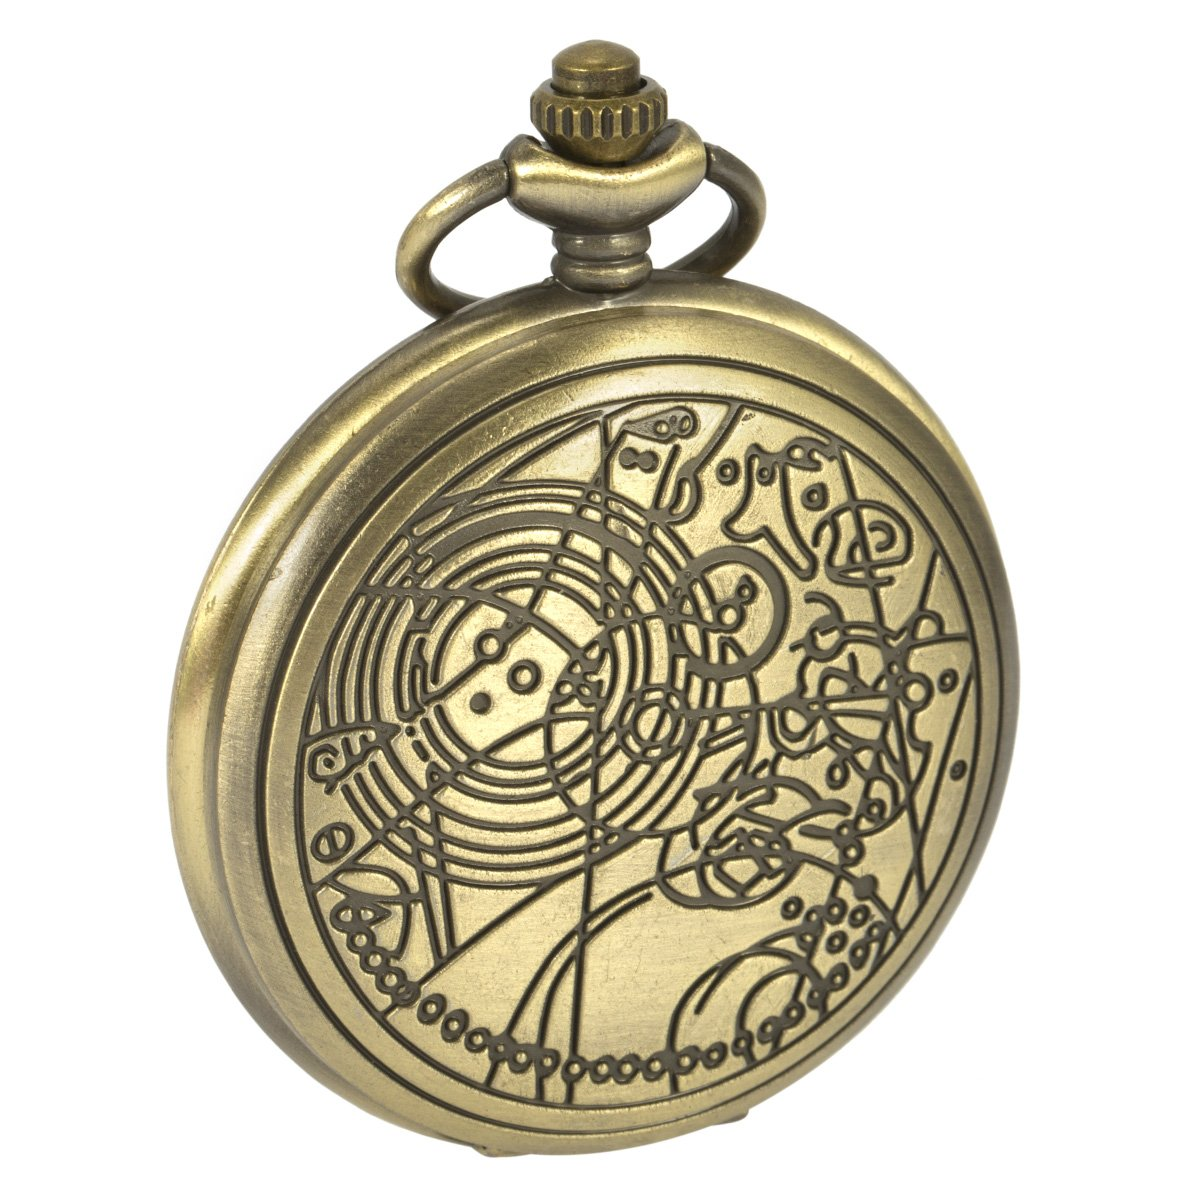 SIBOSUN Pocket Watch Doctor Who Confession Dial Gears Pattern Dr. Who Quartz Chain Box